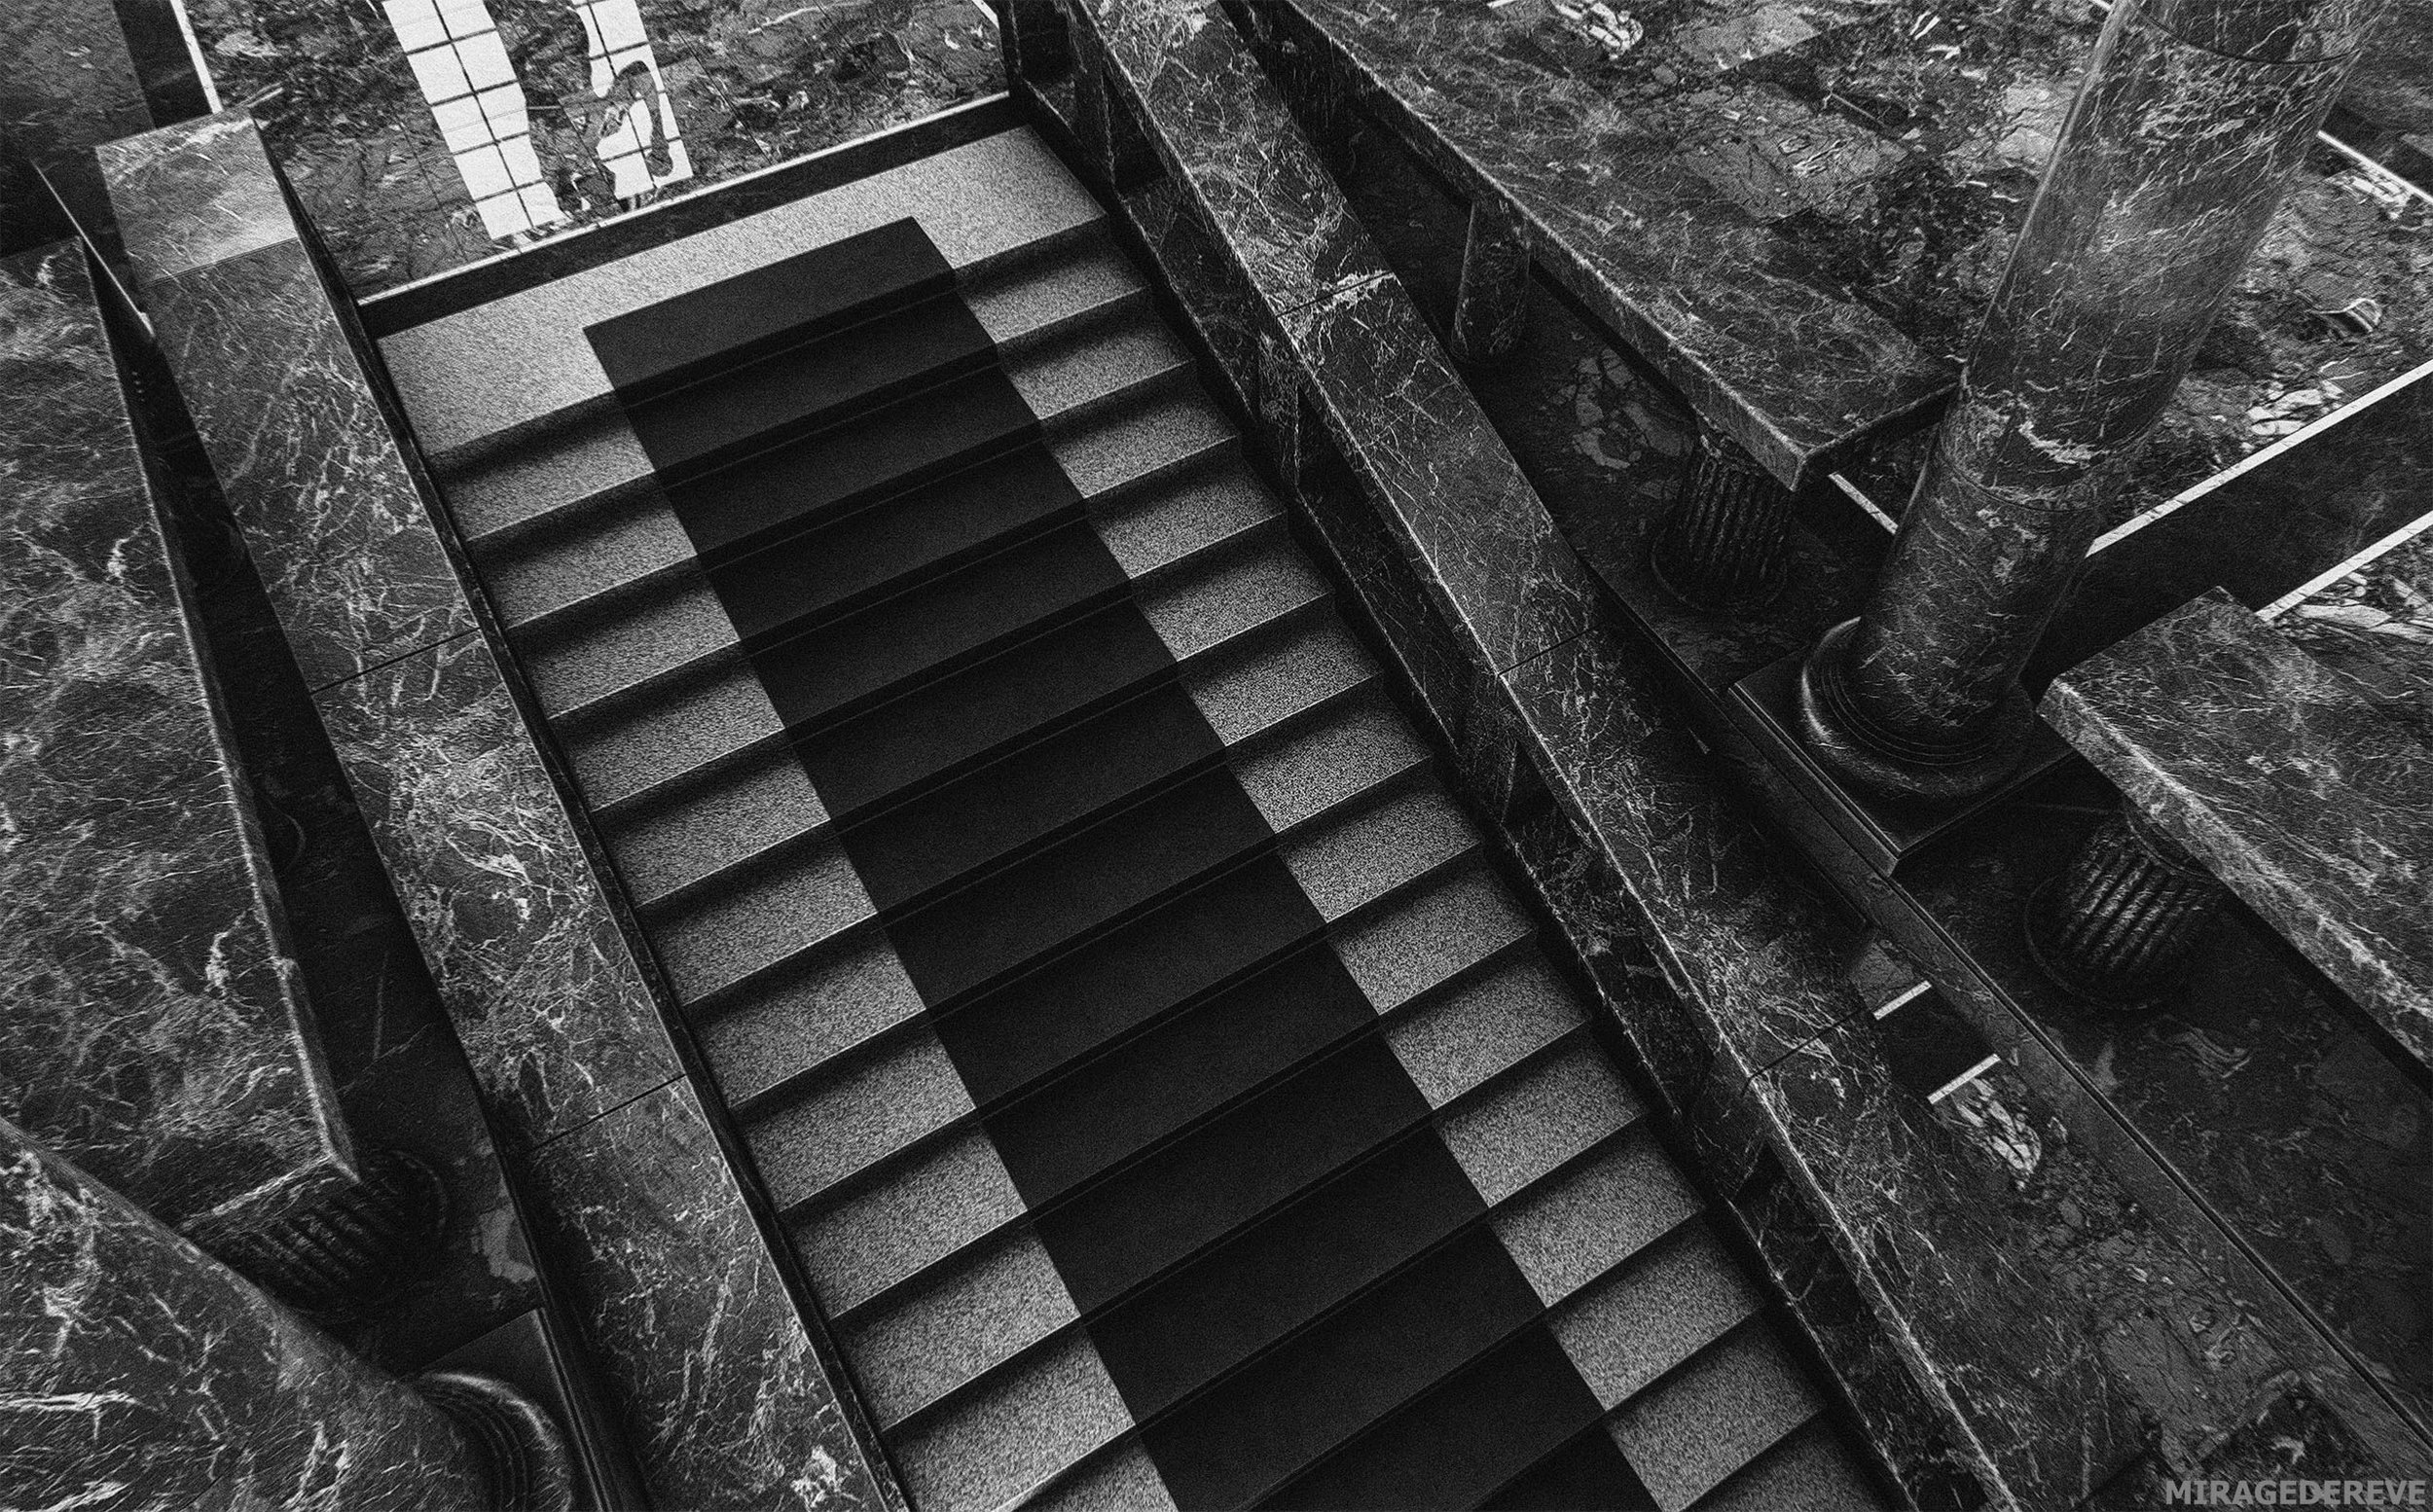 IMAGE 008:  Stairs 002, inspired by the interior of National and University Library of Slovenia